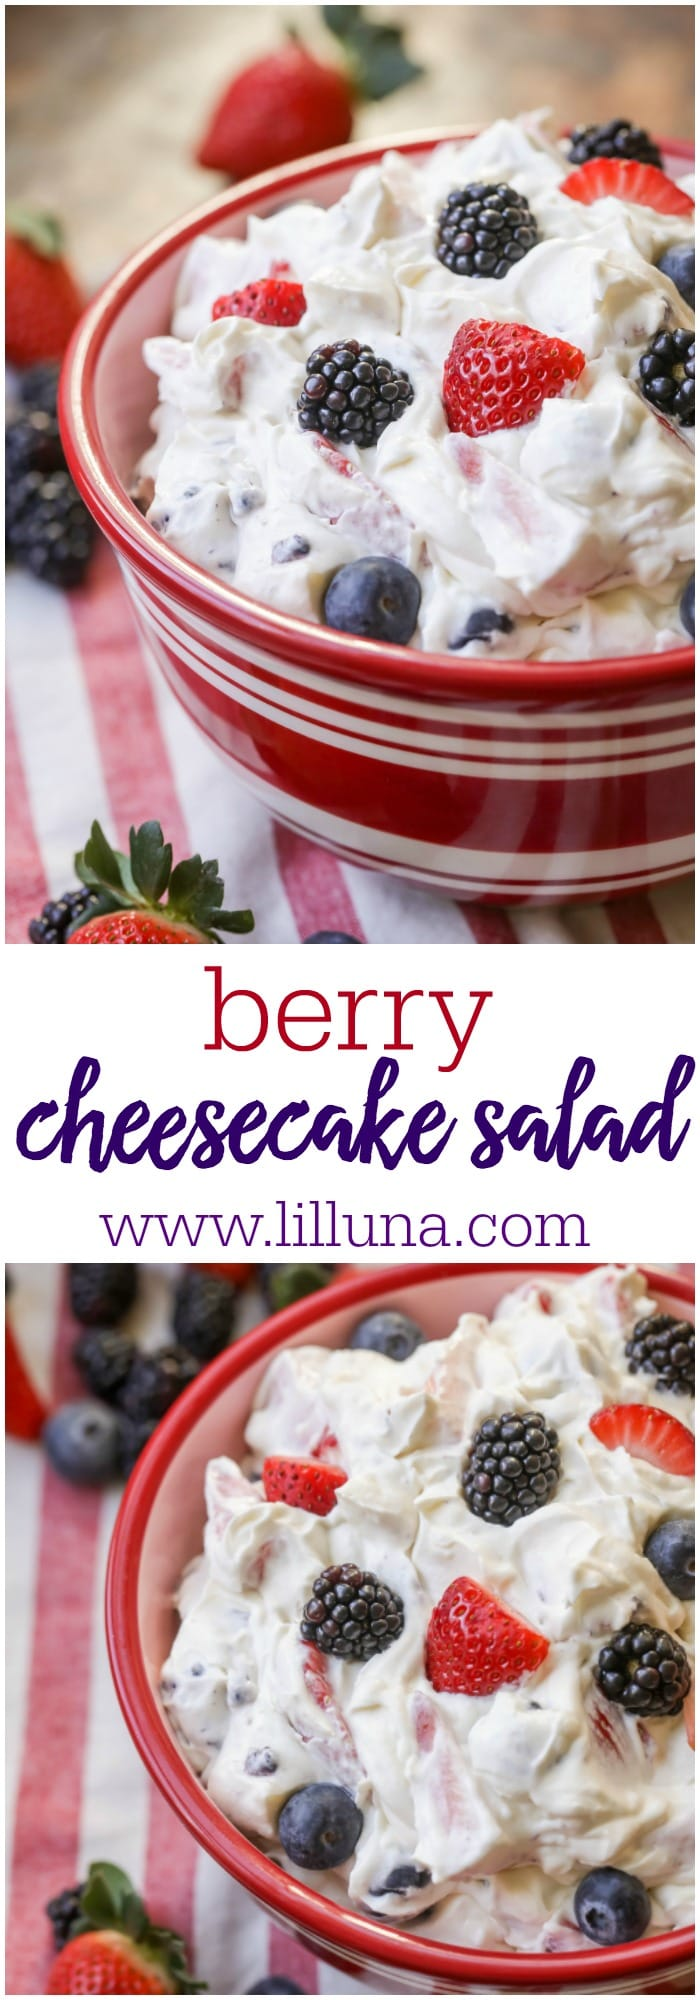 Berry Cheesecake Salad - a fluffy cheesecake-like treat filled with your favorite berries. It's perfect on it's own or in crepes!